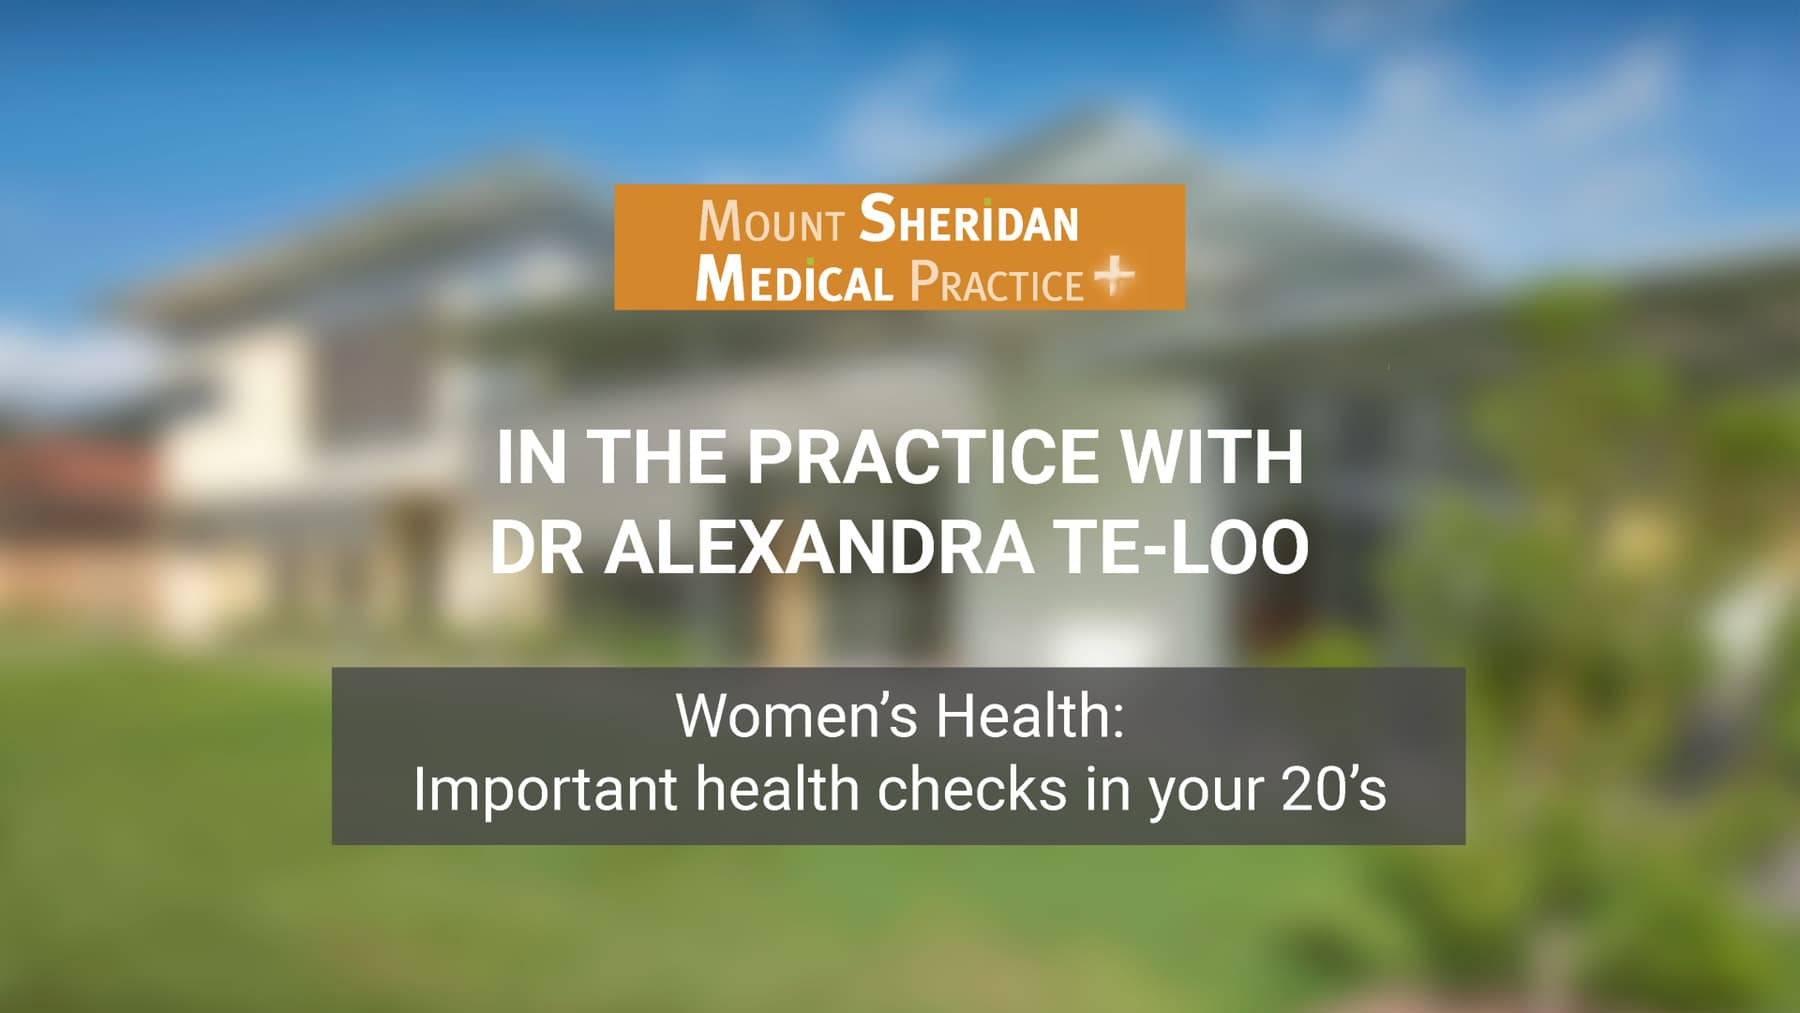 Women's Health: Important health checks in your 20's